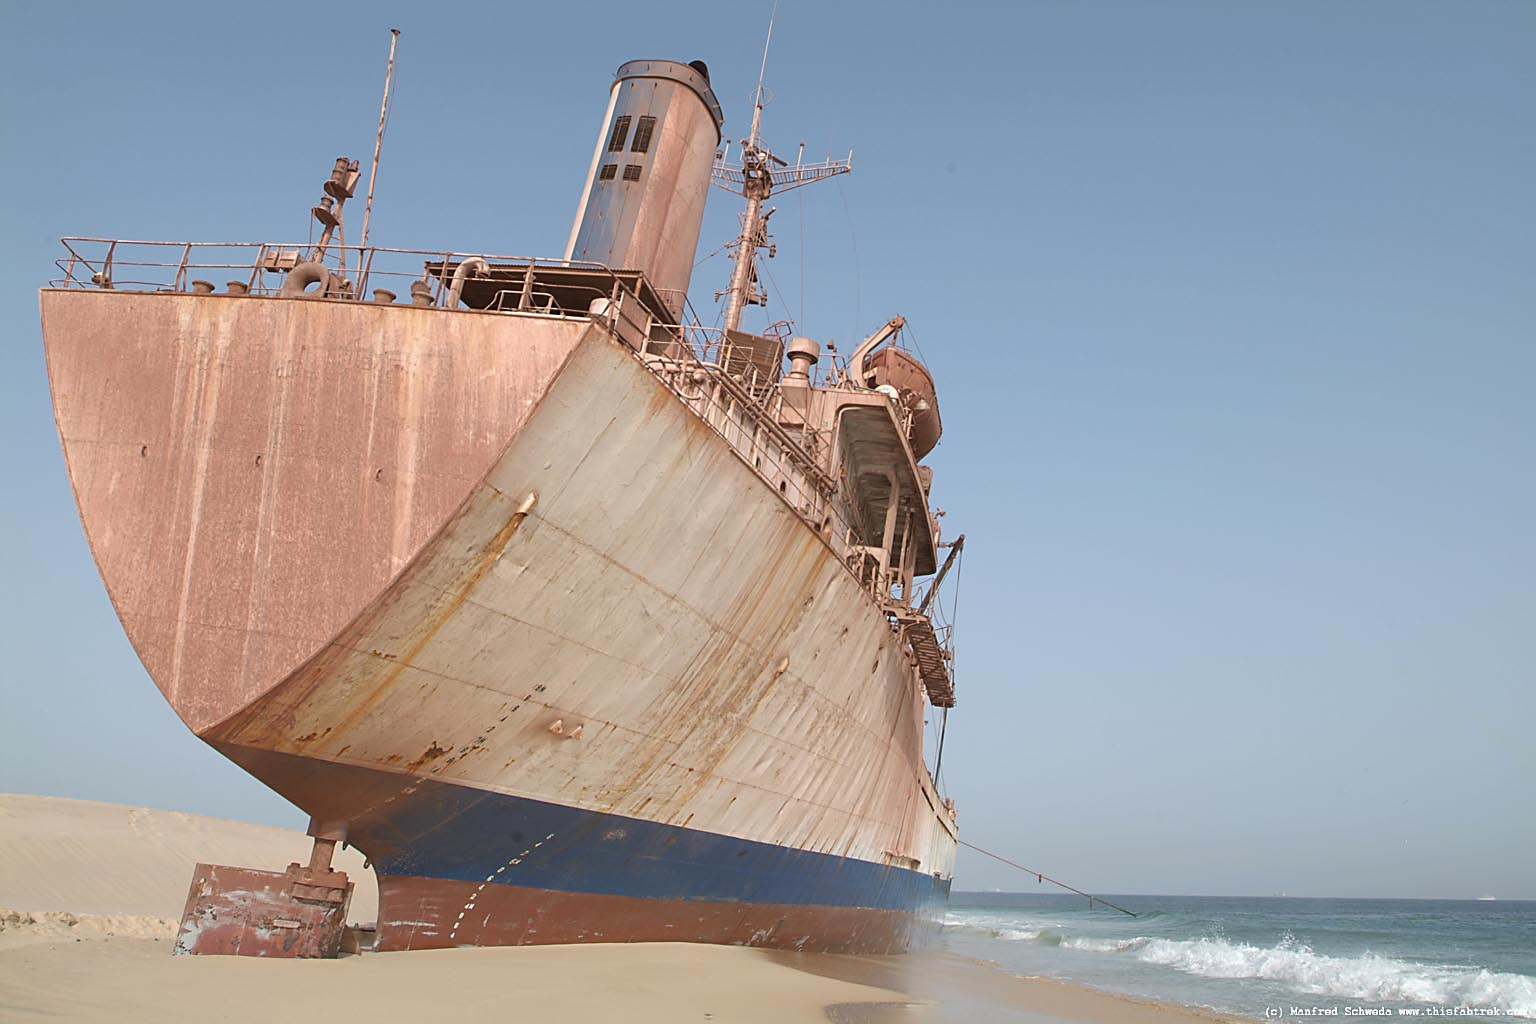 http://www.thisfabtrek.com/journey/africa/mauritania/20050912-nouadhibou/nouadhibou-cap-blanche-stranded-ship-08-4.jpg